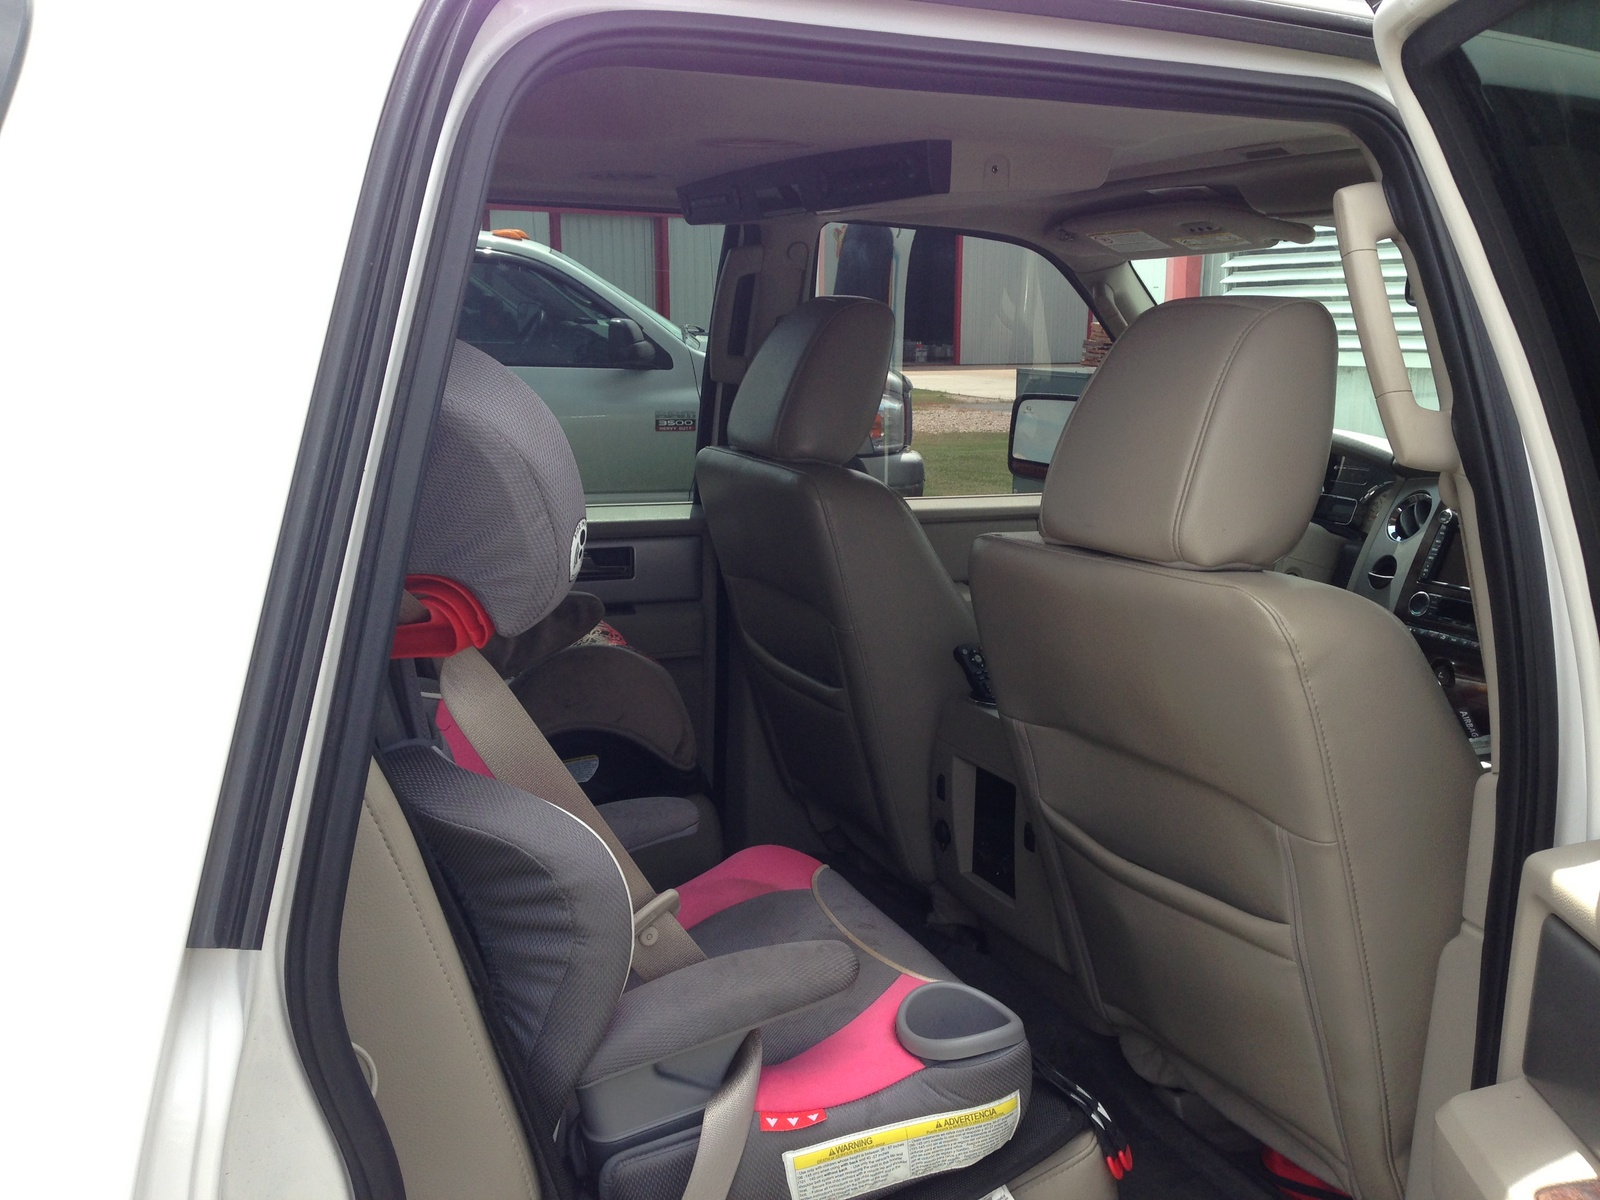 2010 Ford Expedition - Review - CarGurus